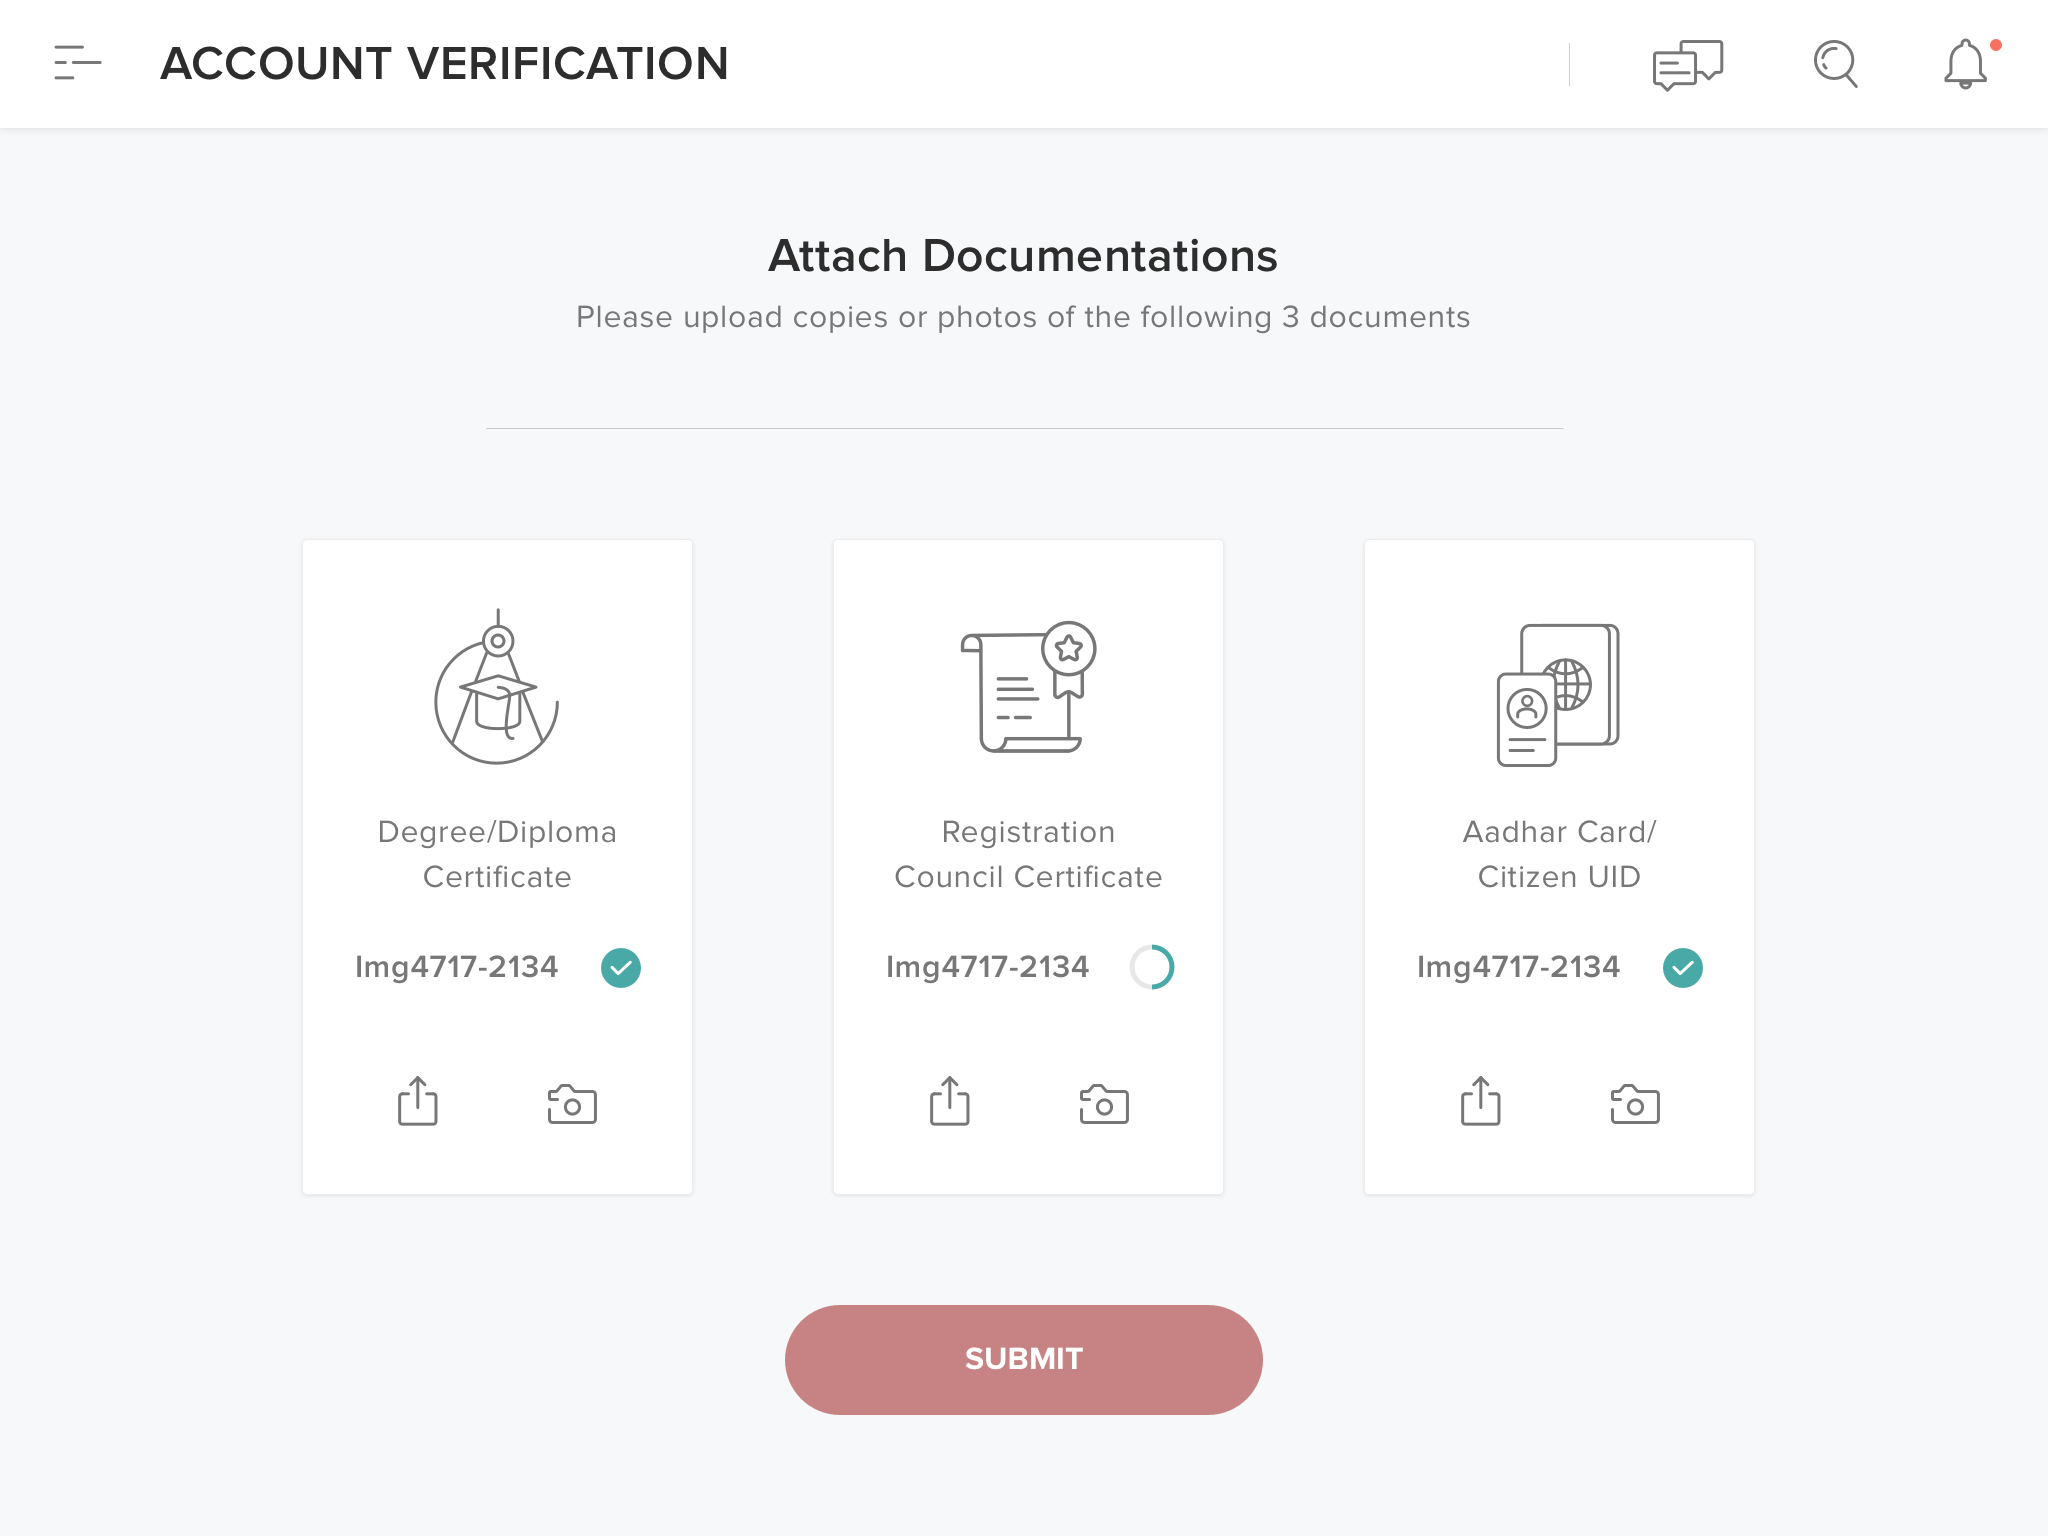 Attach documents uploading documents